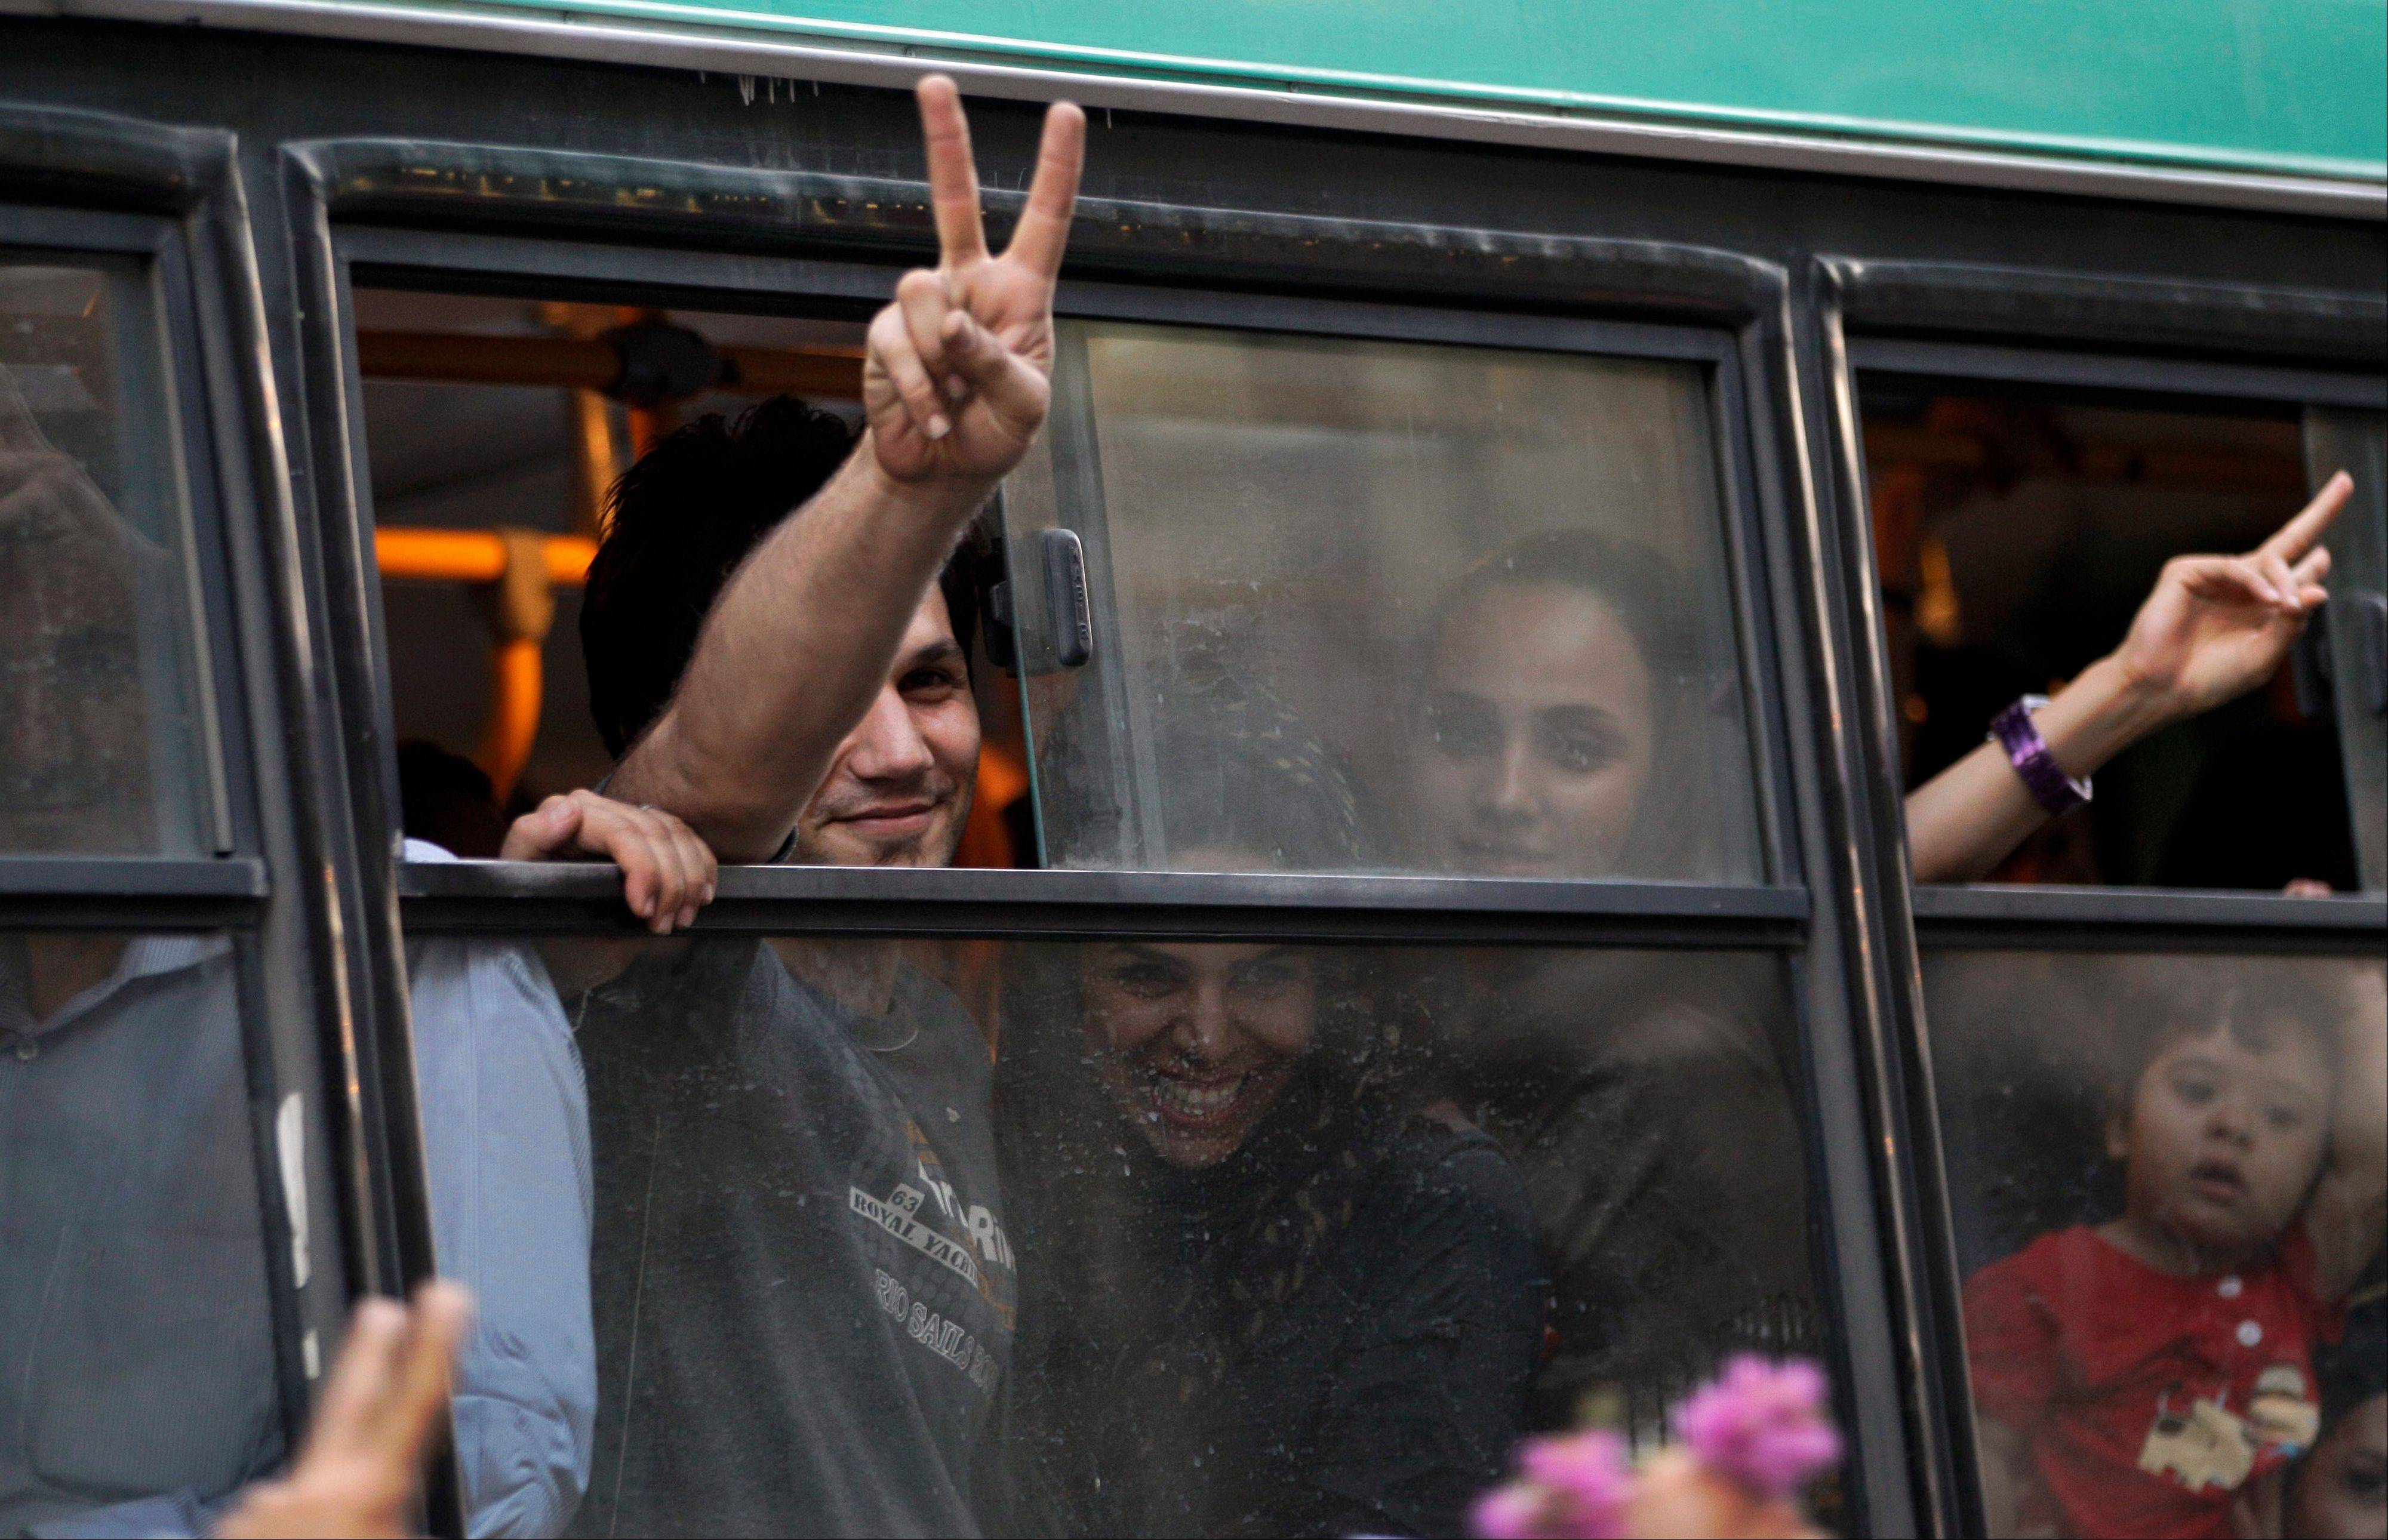 Passengers in a public bus flash victory signs in a reaction of supporters of the Iranian presidential candidate Hasan Rowhani, as they attend a celebration gathering Saturday in Tehran. Moderate cleric Hasan Rowhani was declared the winner of Iran's presidential vote after gaining support among many reform-minded Iranians looking to claw back a bit of ground after years of crackdowns.